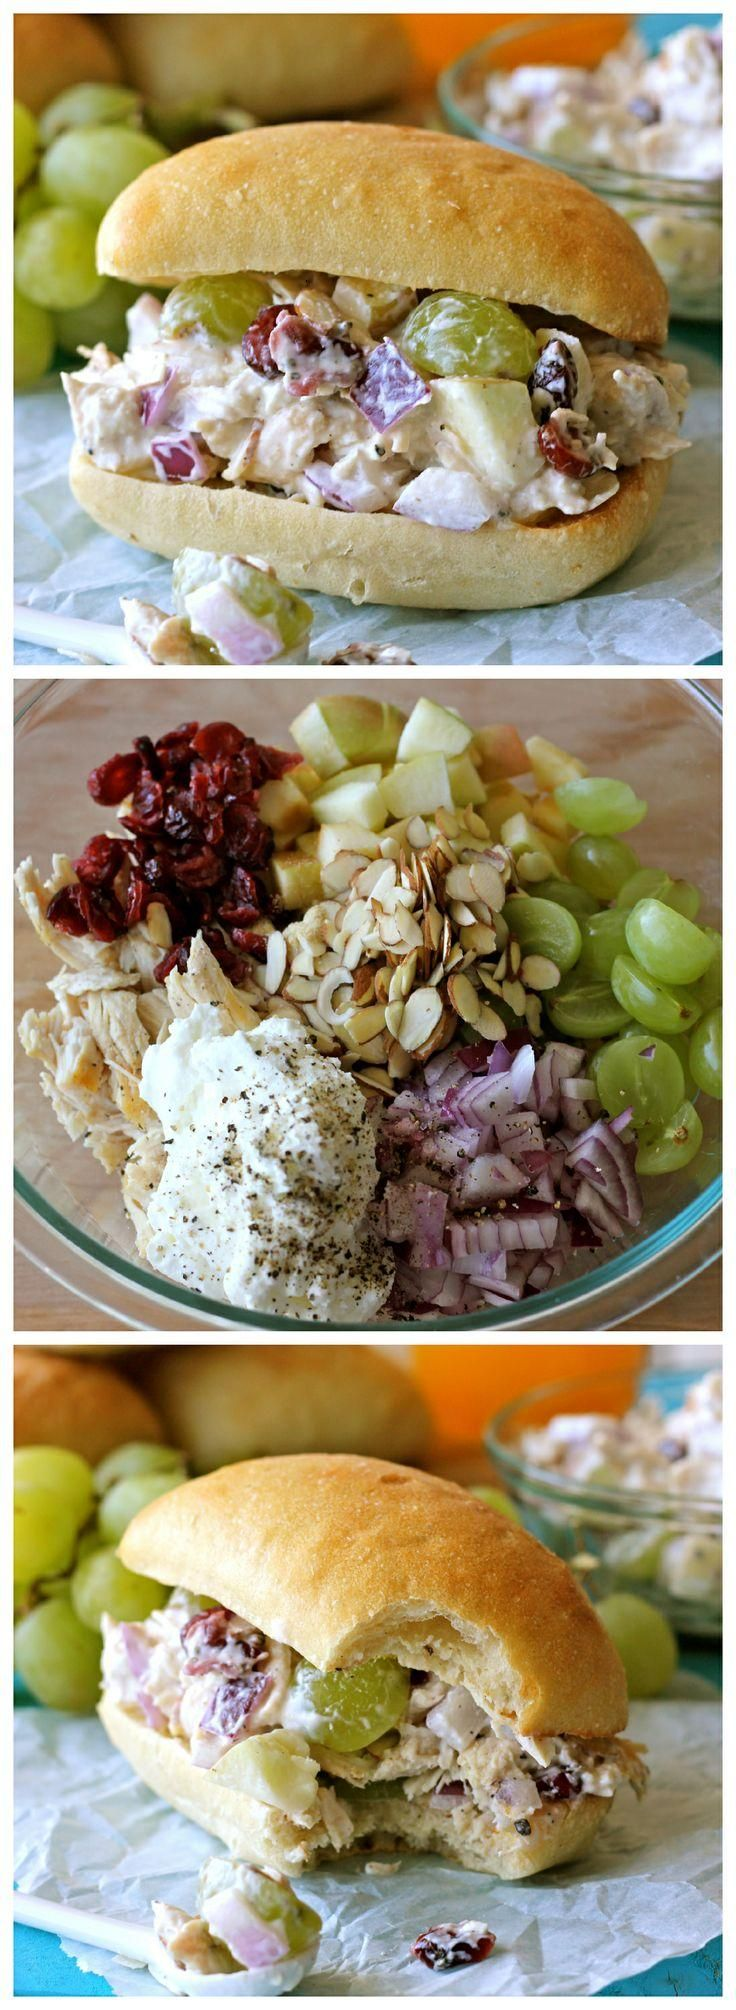 GREEK YOGURT CHICKEN SALAD SANDWICH . Chicken, grapes, onion, almonds, cranberries, Greek yogurt, salt & pepper